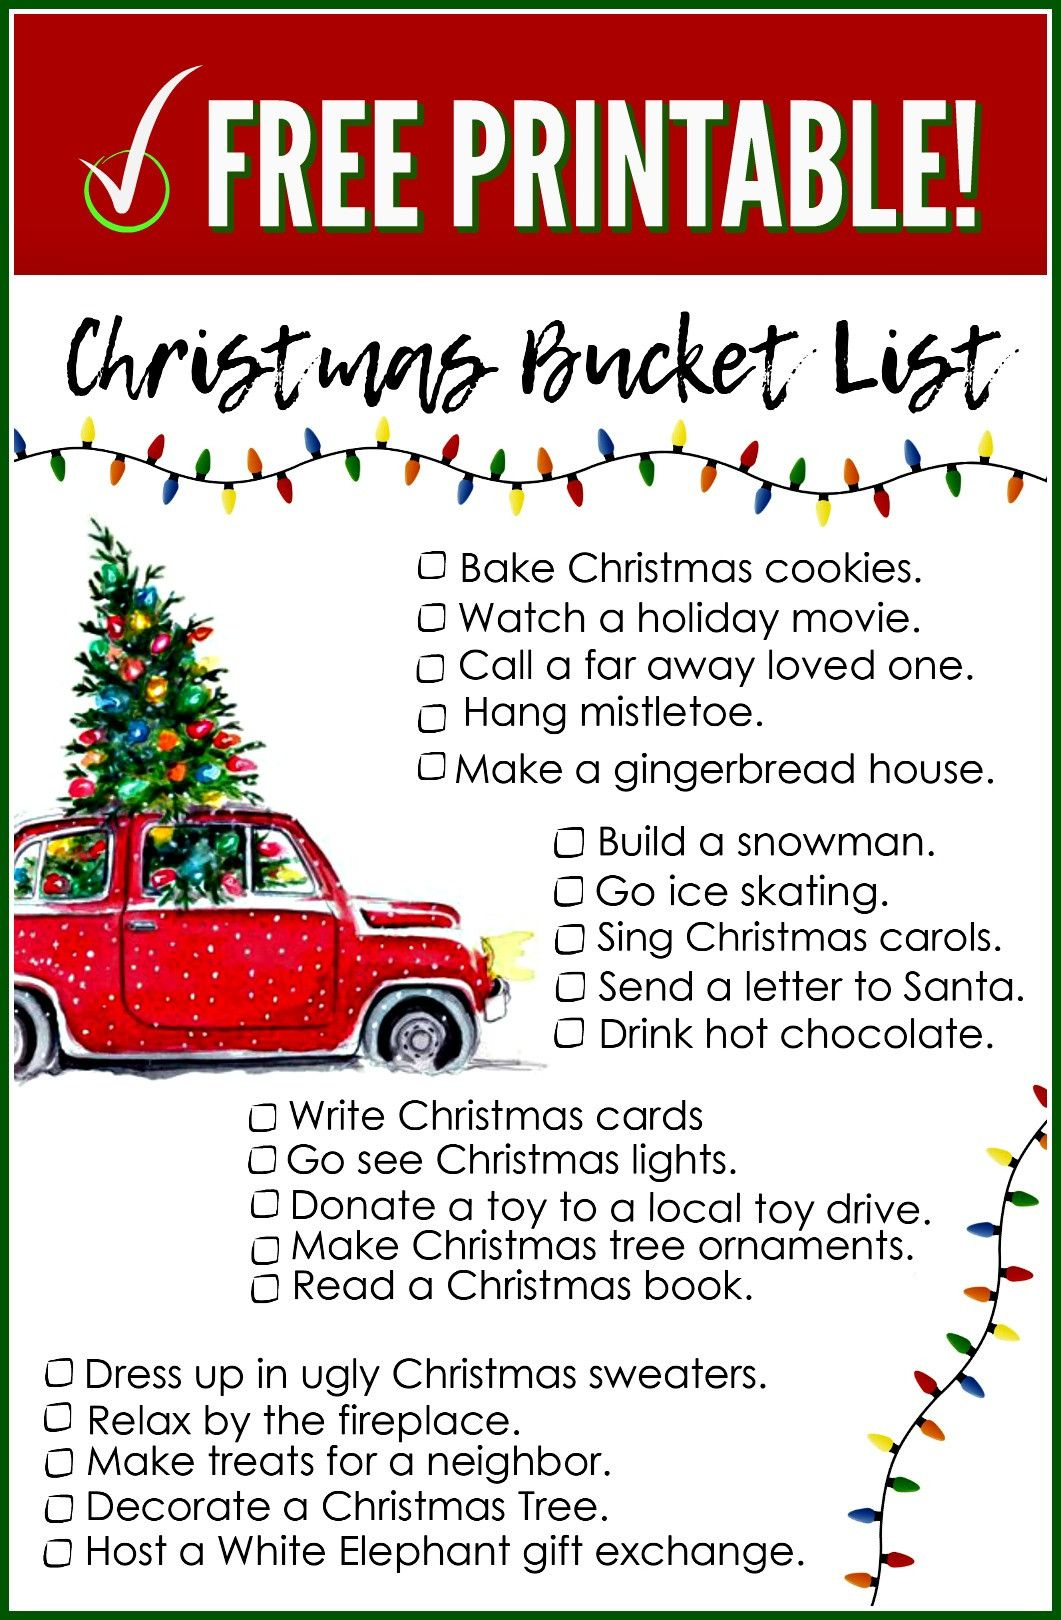 FREE Printable Christmas Bucket List #fallbucketlist